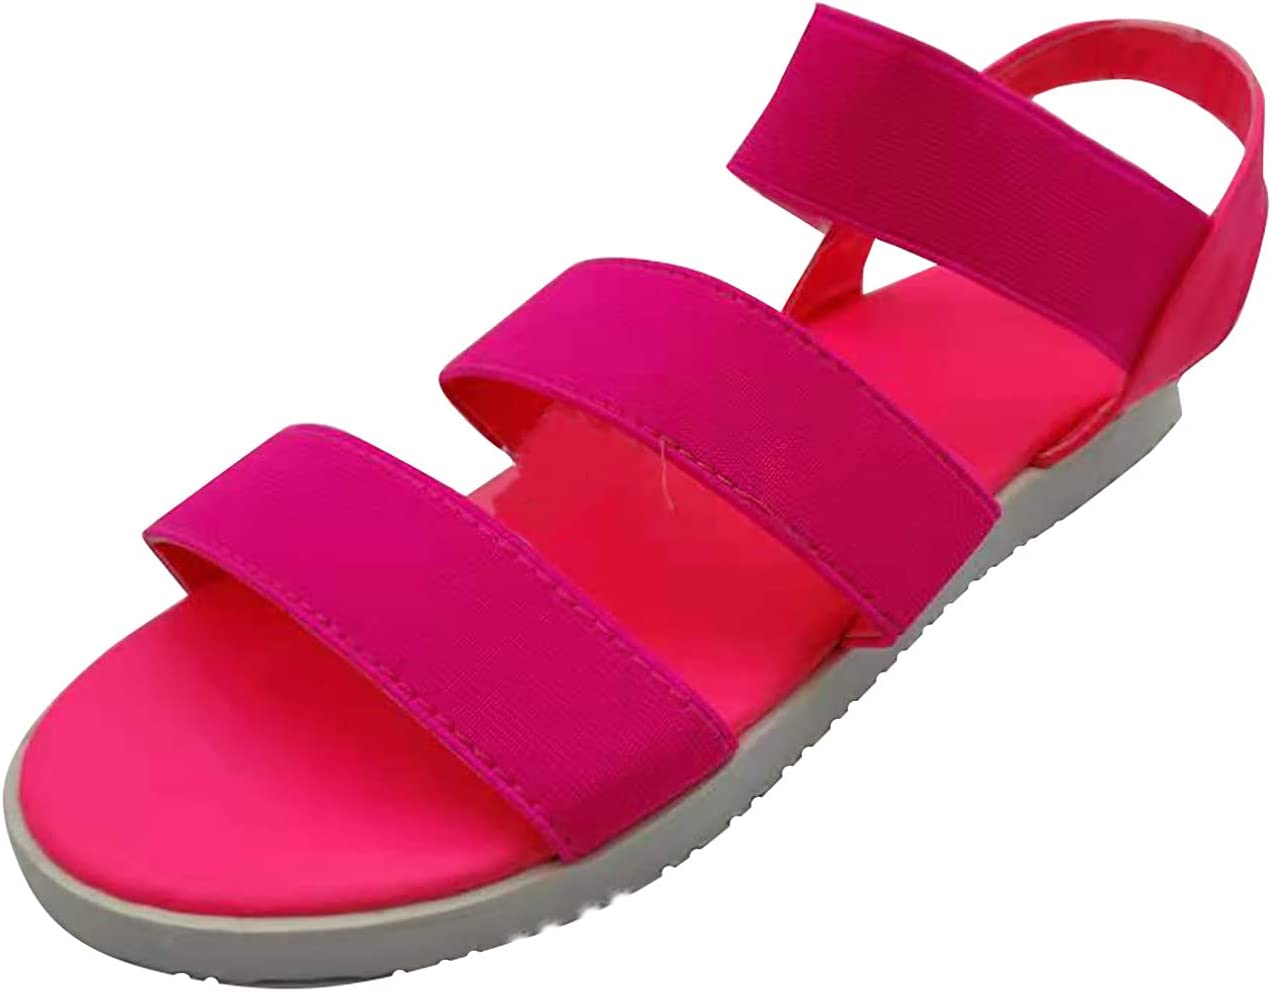 Fragarn Waterproof Hiking Sandals Women Arch Support Sport Sandals Comfortable Walking Water Sandals for Beach Travel Athletic(Pink,9)